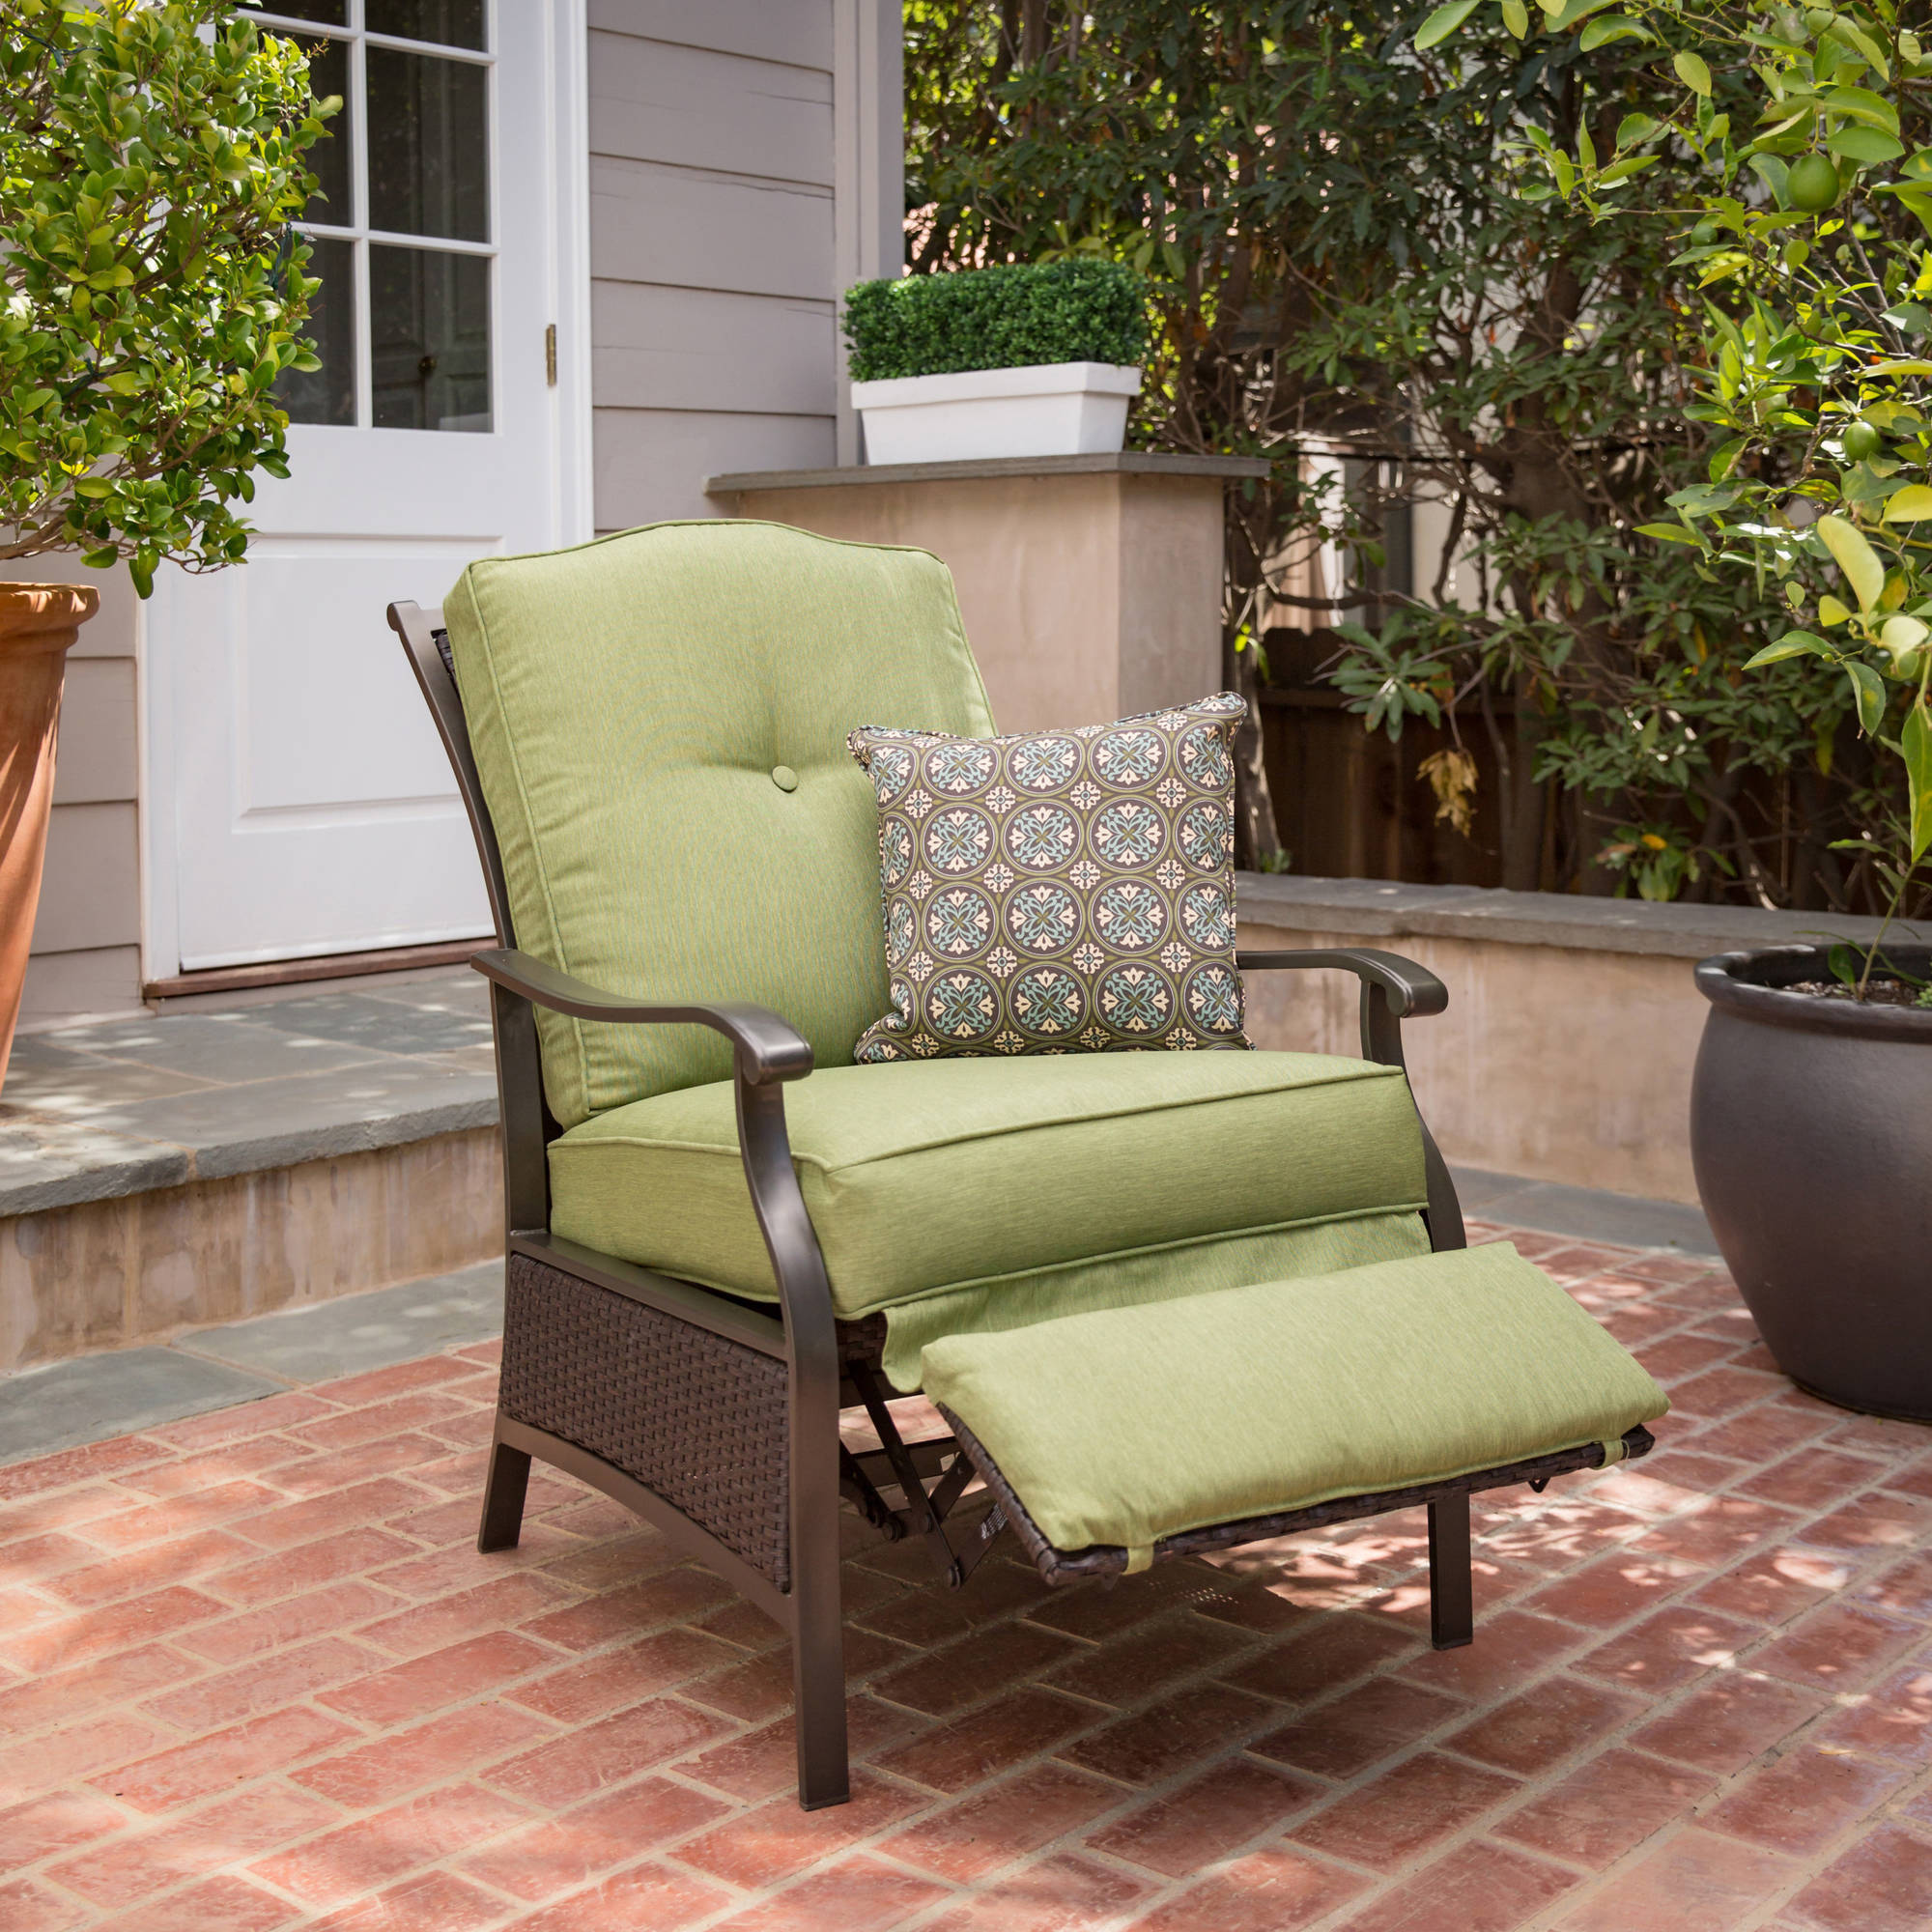 & Better Homes and Gardens Providence Outdoor Recliner - Walmart.com islam-shia.org